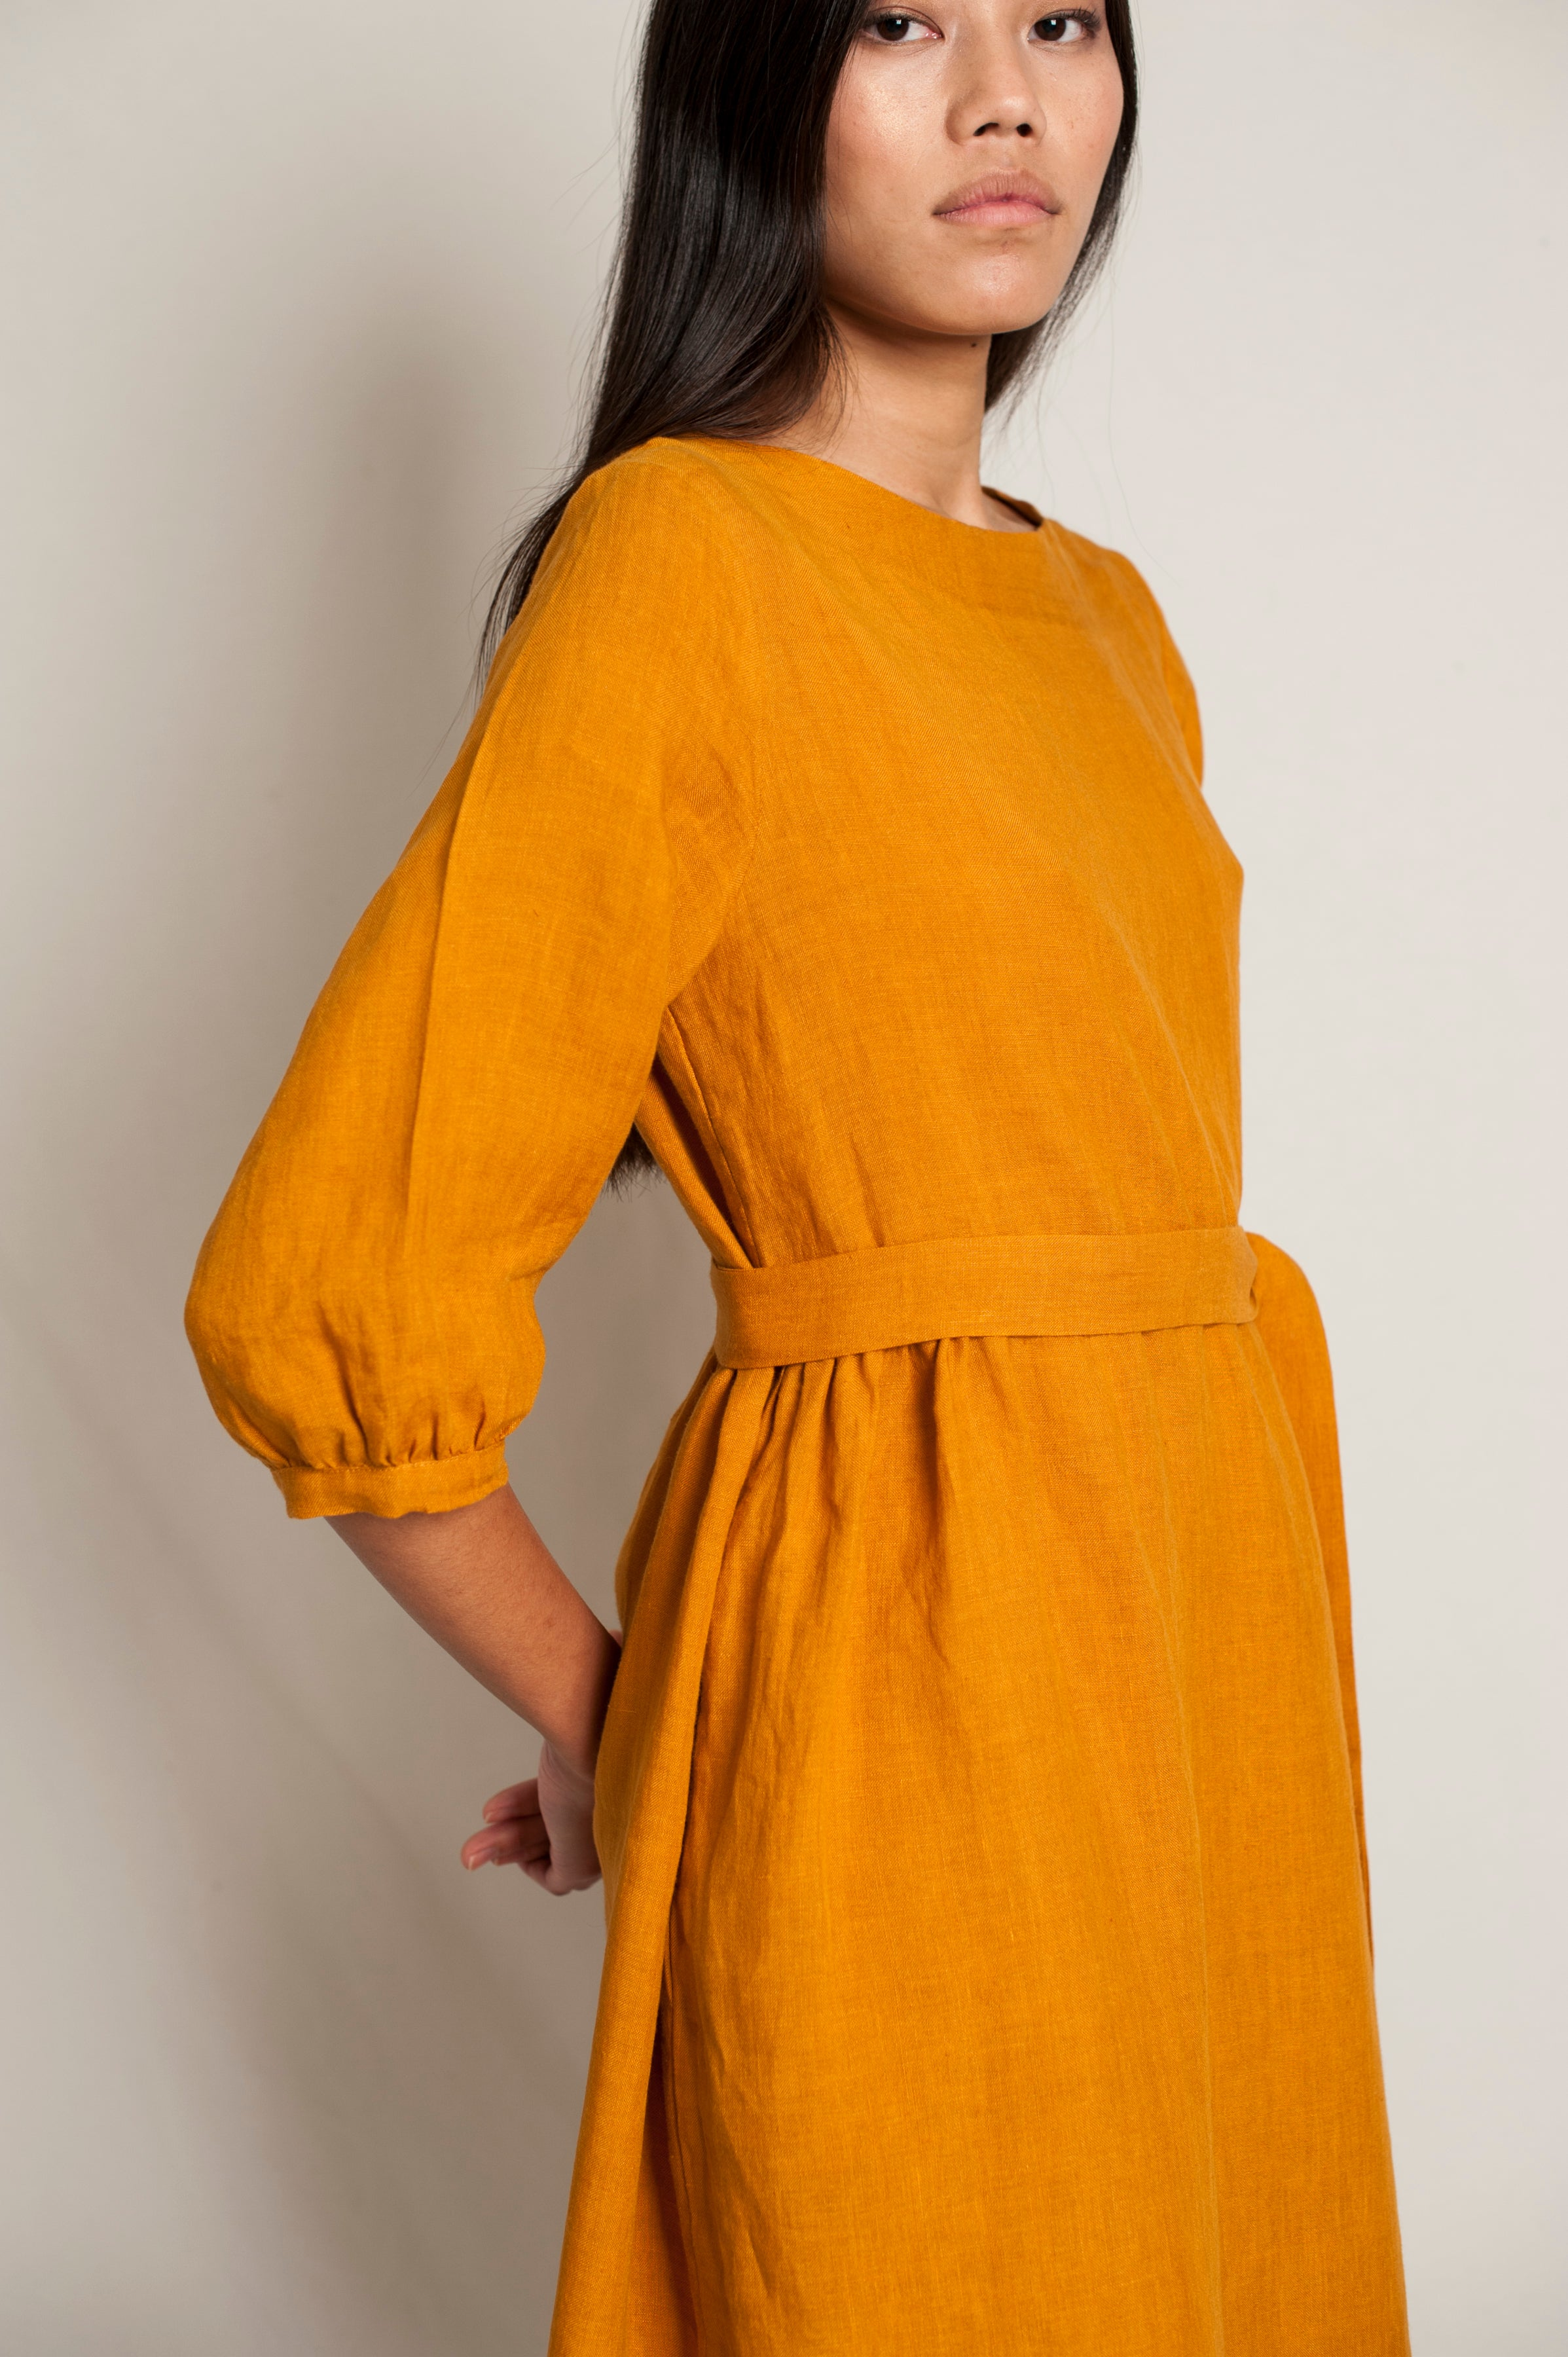 L'Envers - Flora Linen Dress - 100% French linen - Color Ocre - Zoom Picture